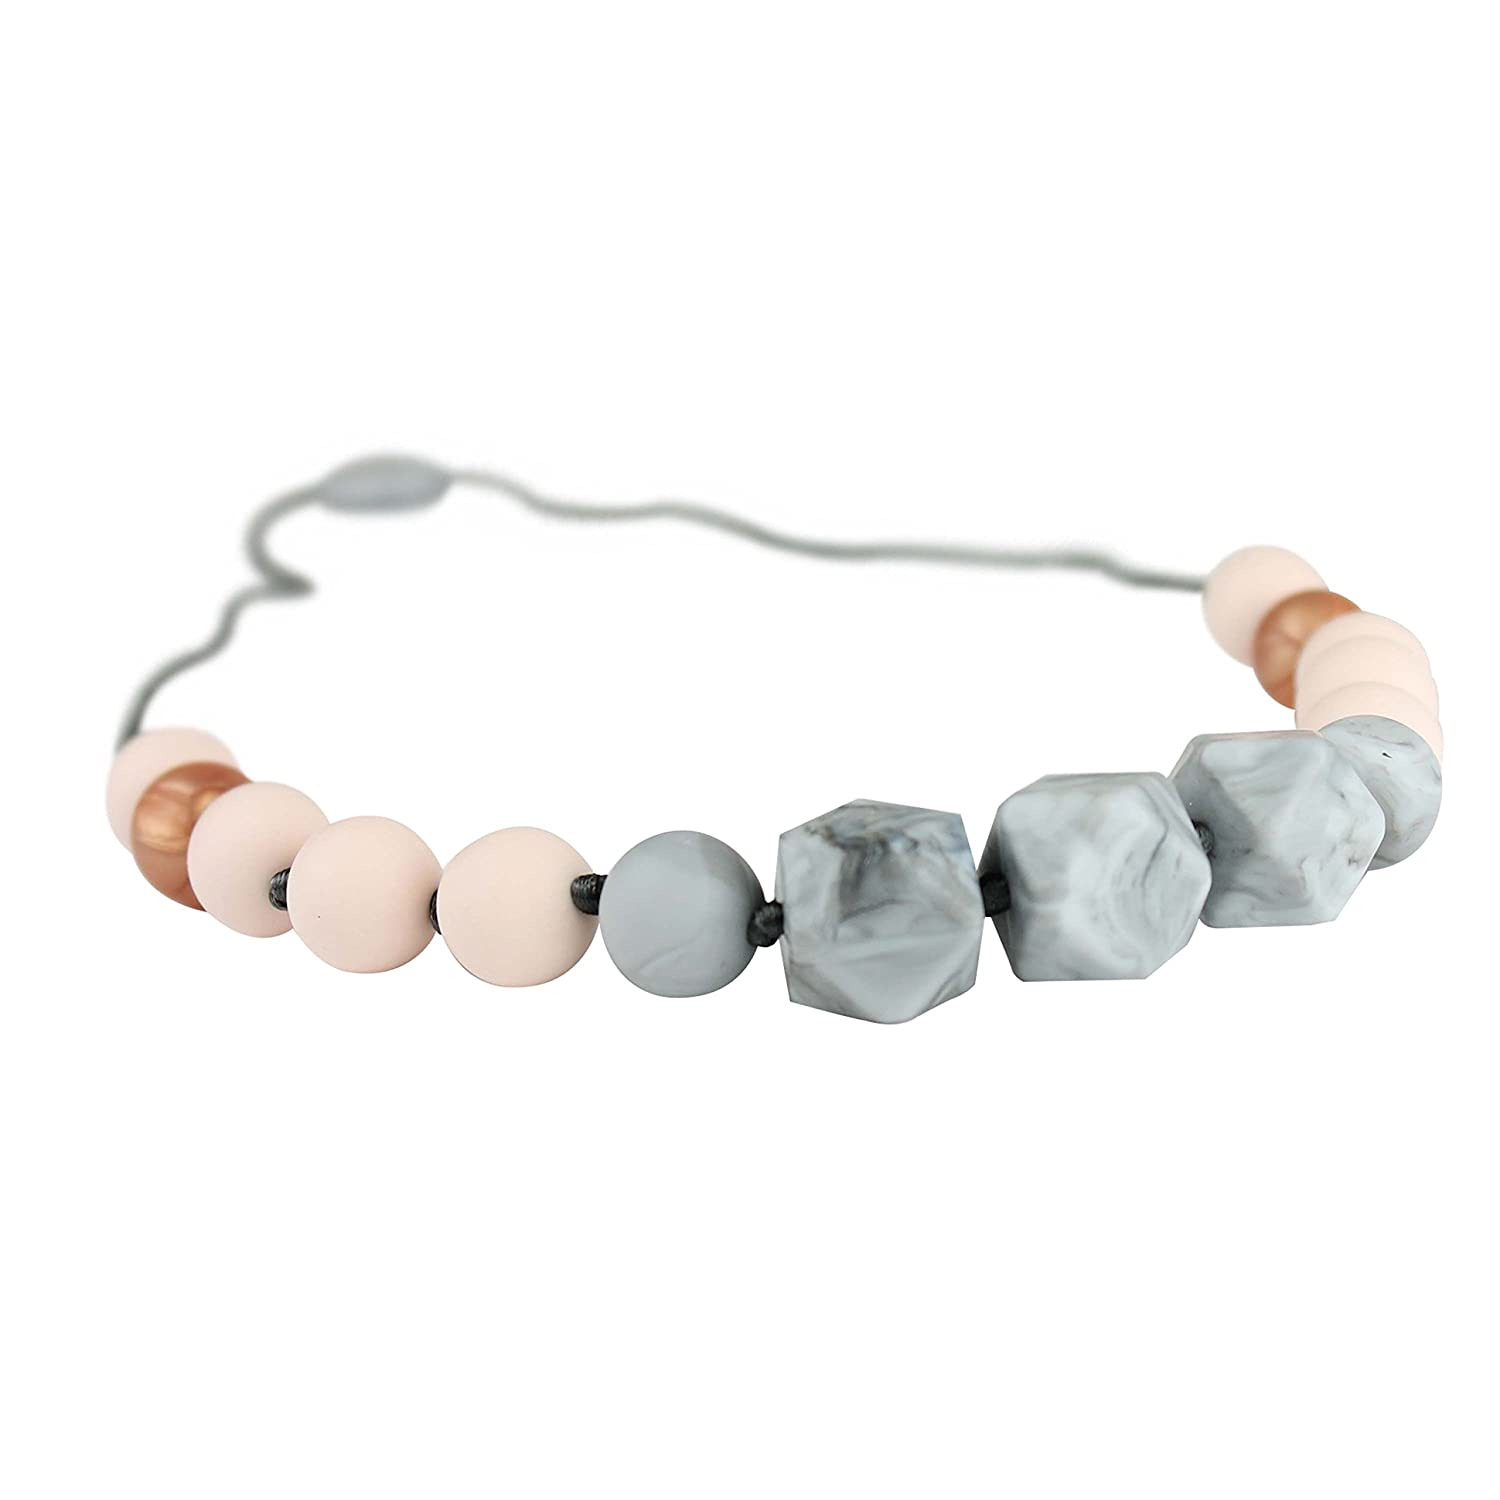 Itzy Ritzy Teething Happens Silicone Petite Strand Bead Necklace Hint of Blush